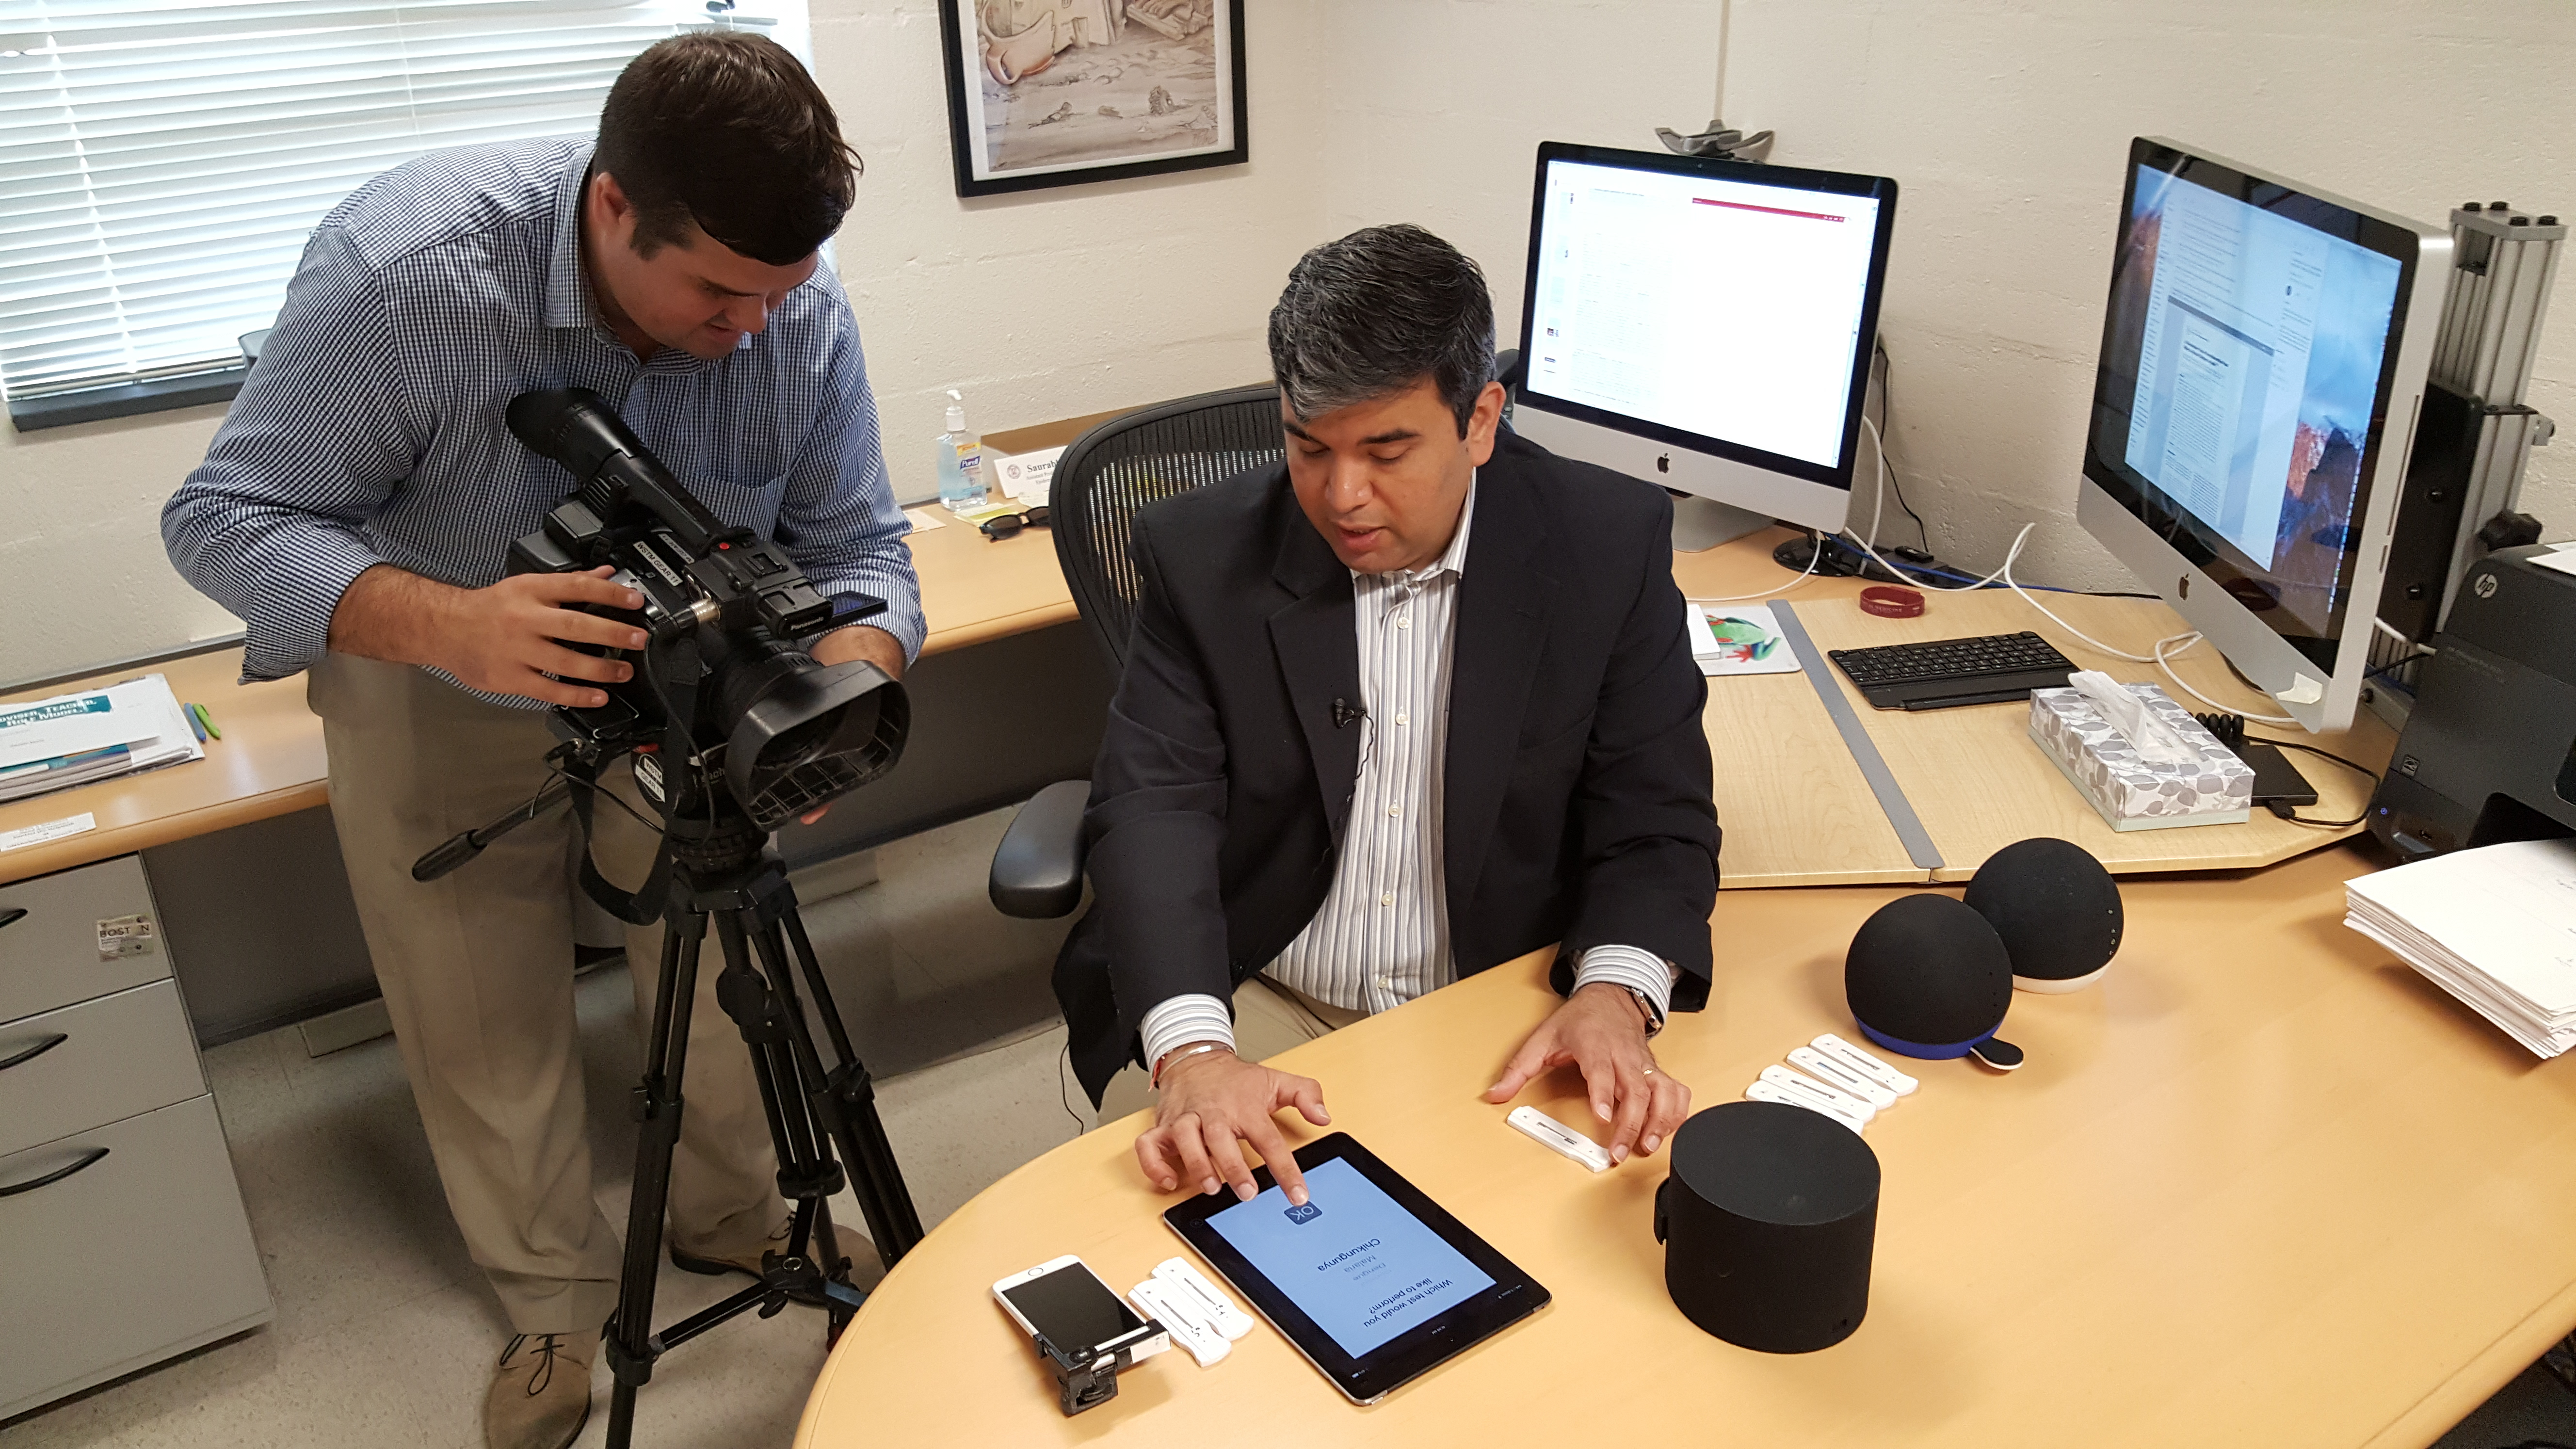 Dr. Mehta in an interview